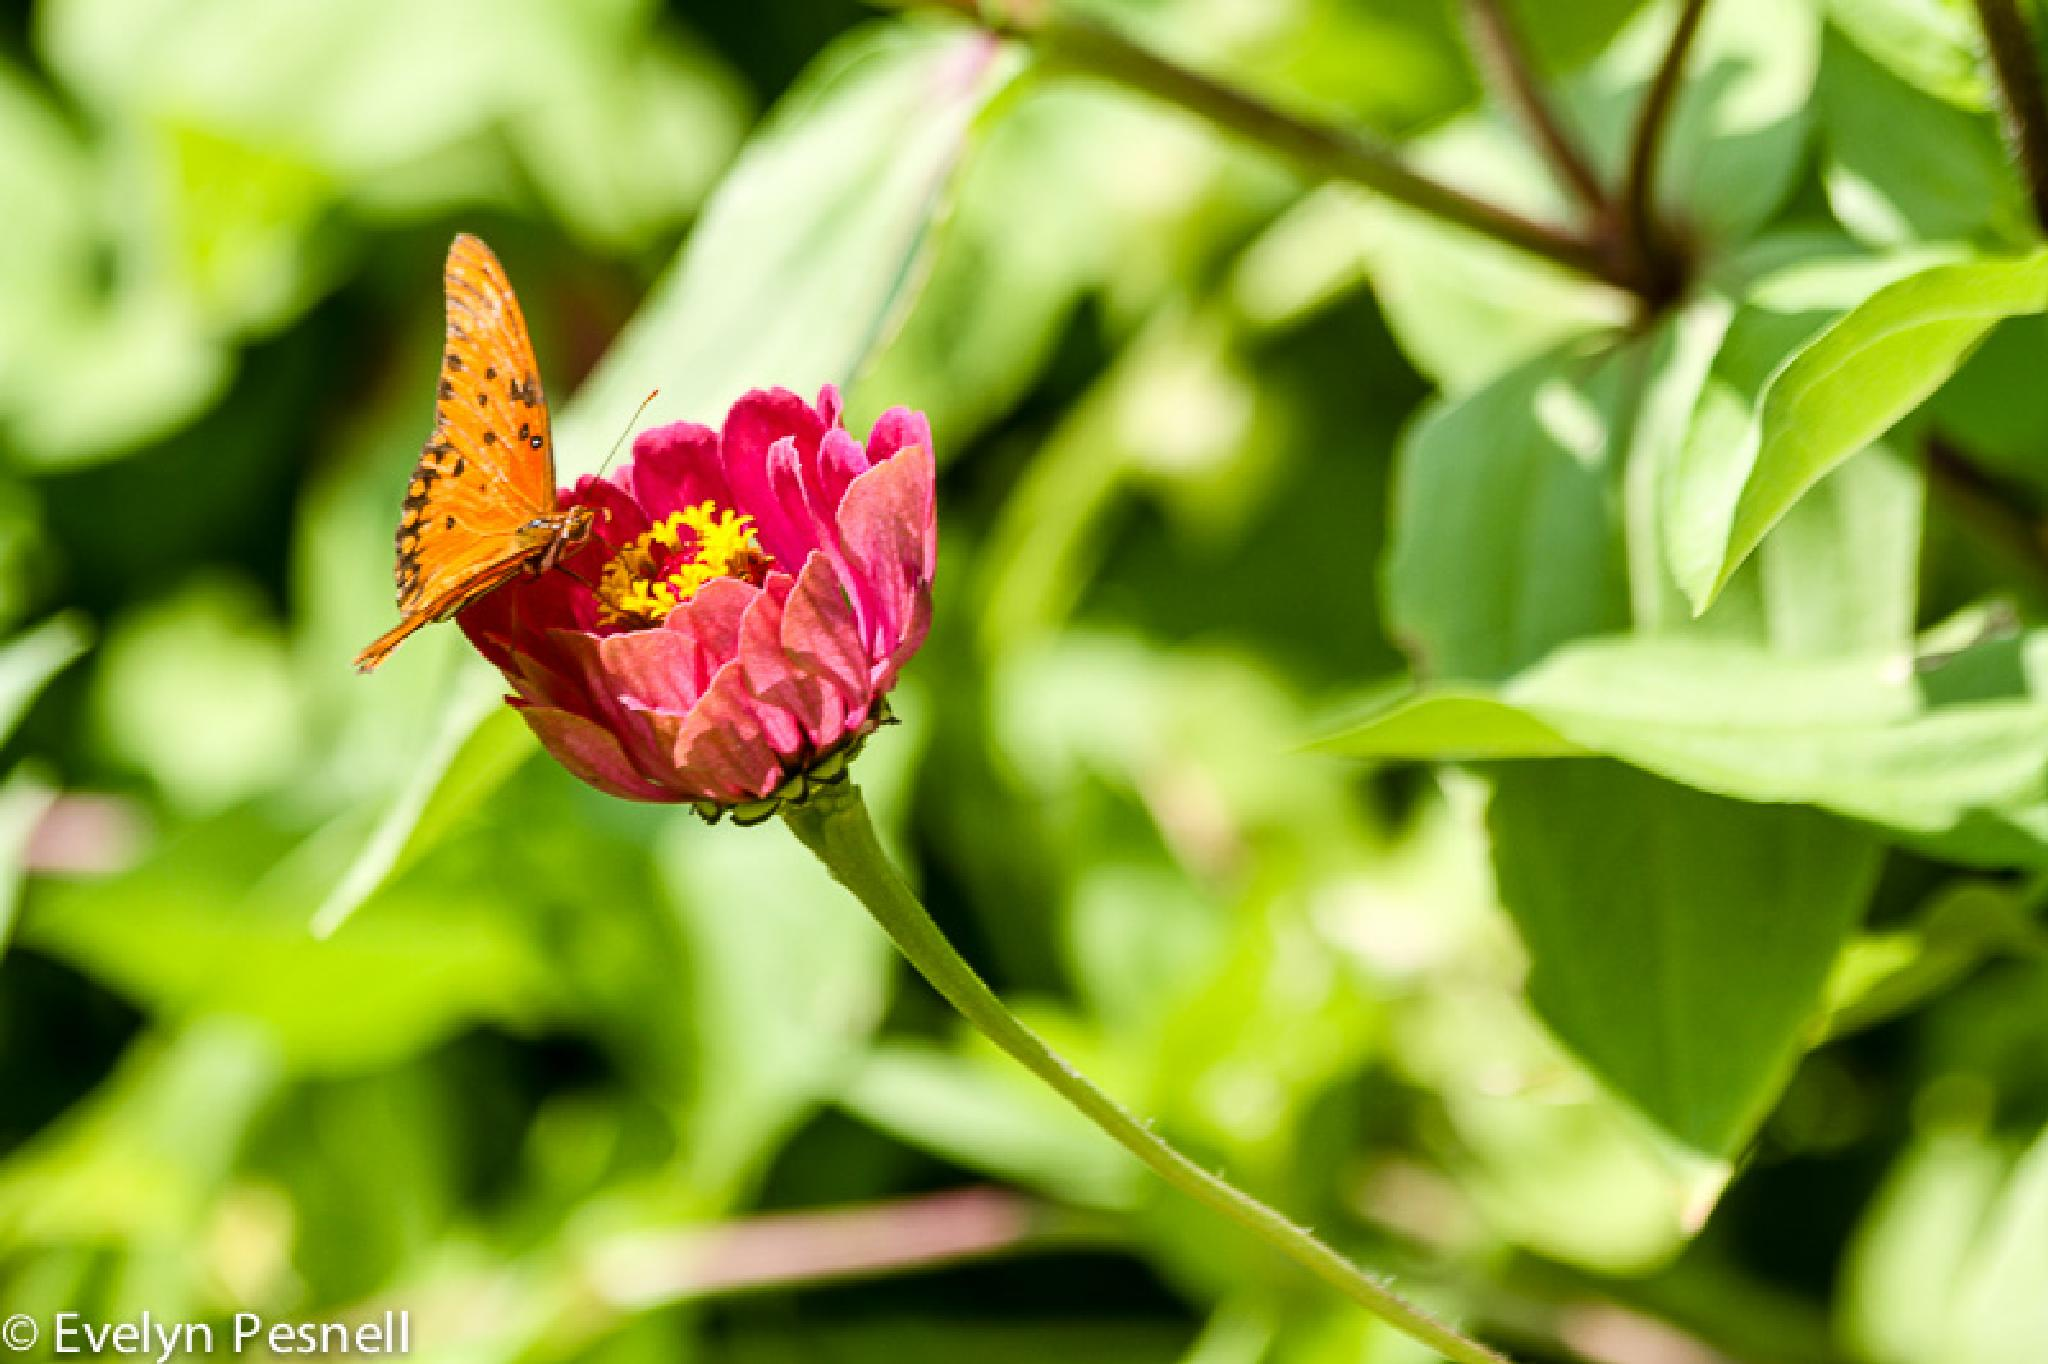 zinnia butter by pesnell1